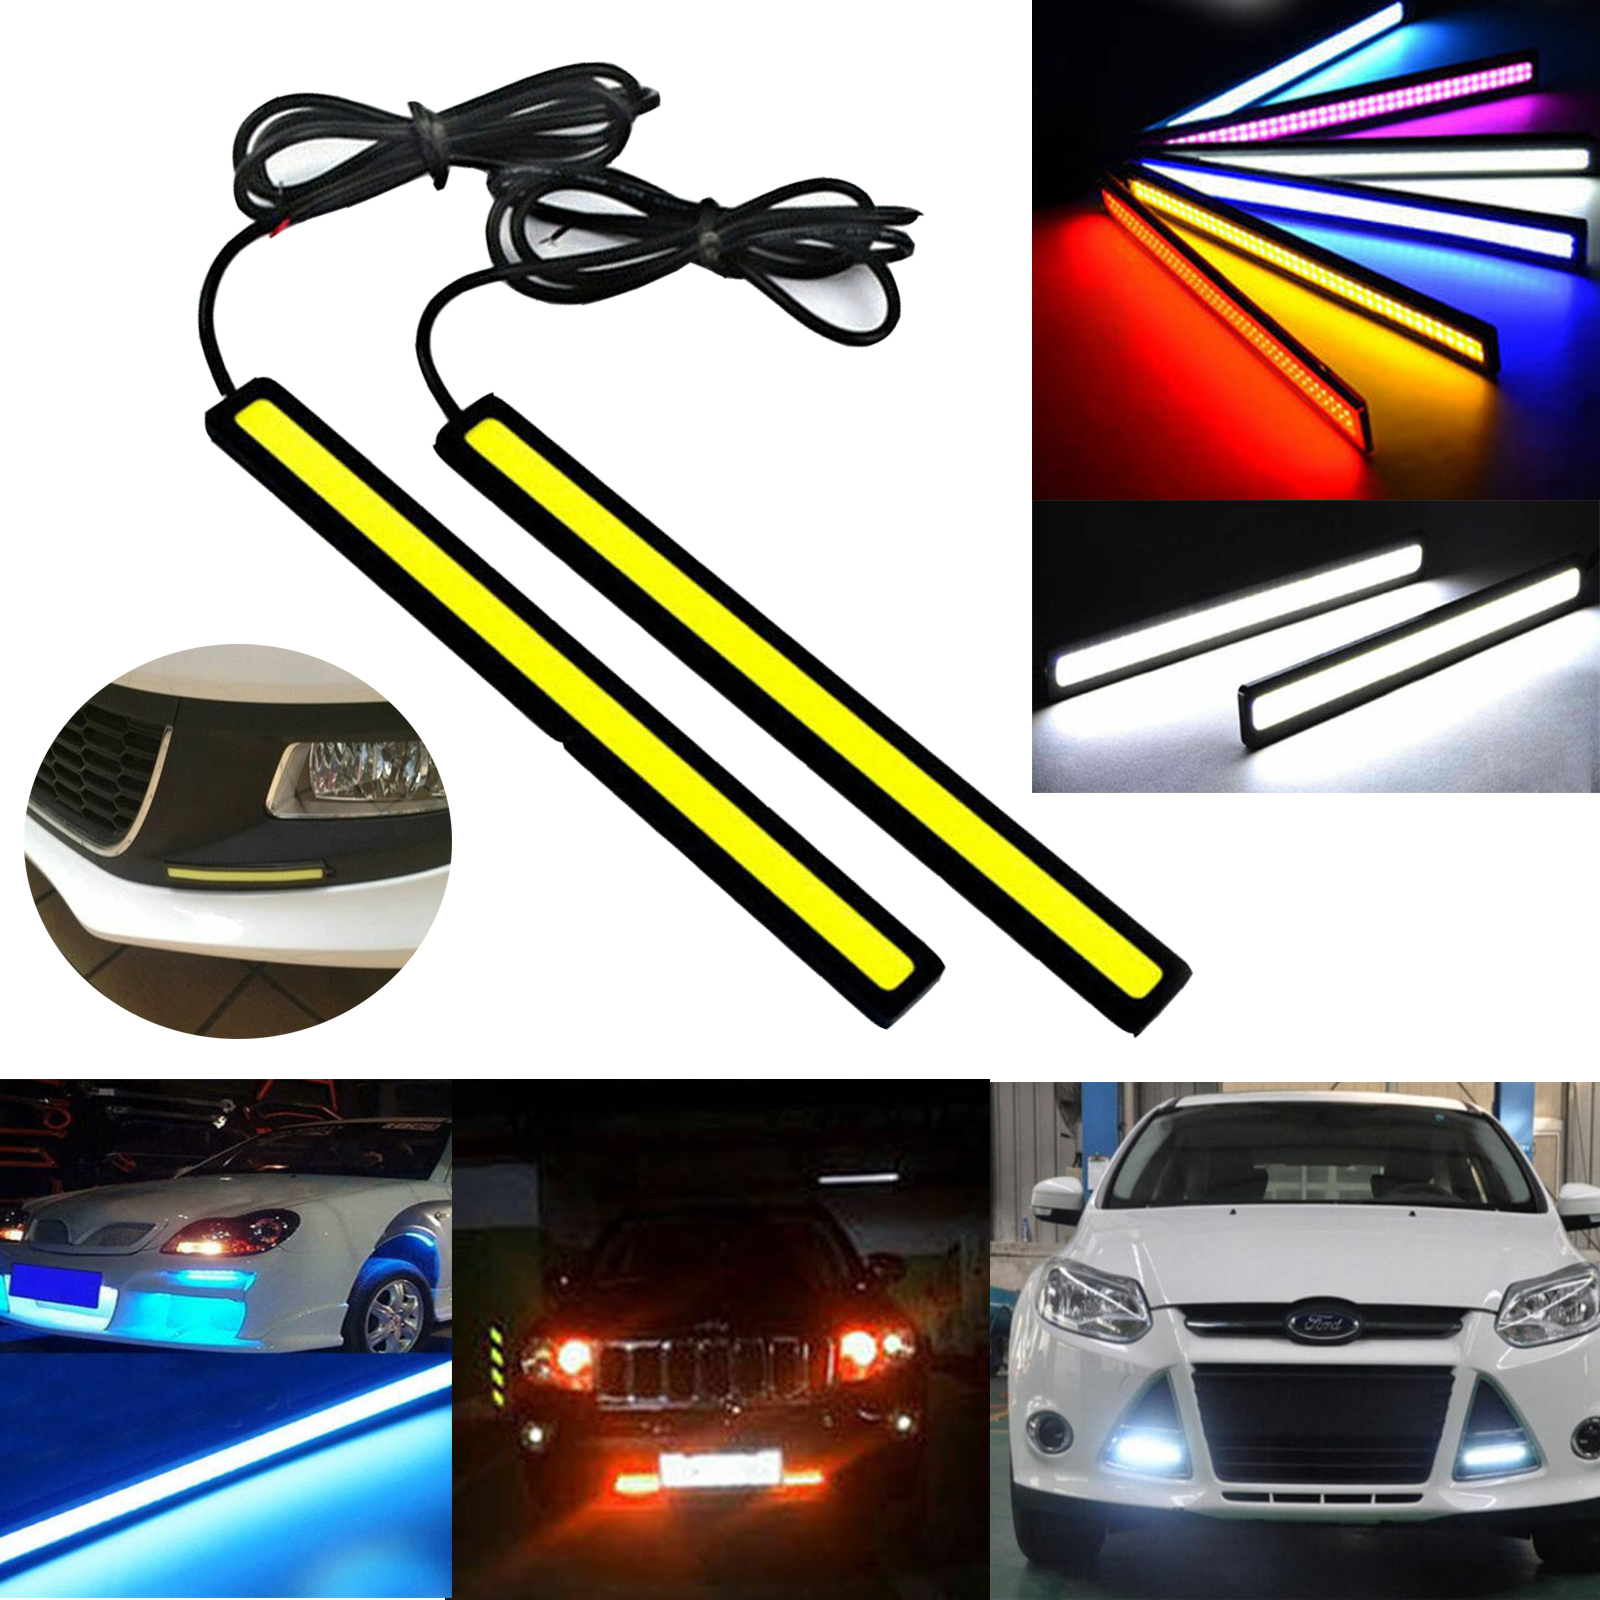 2x Replace Bright White Car COB LED Lights DRL Fog Driving Lamp Waterproof